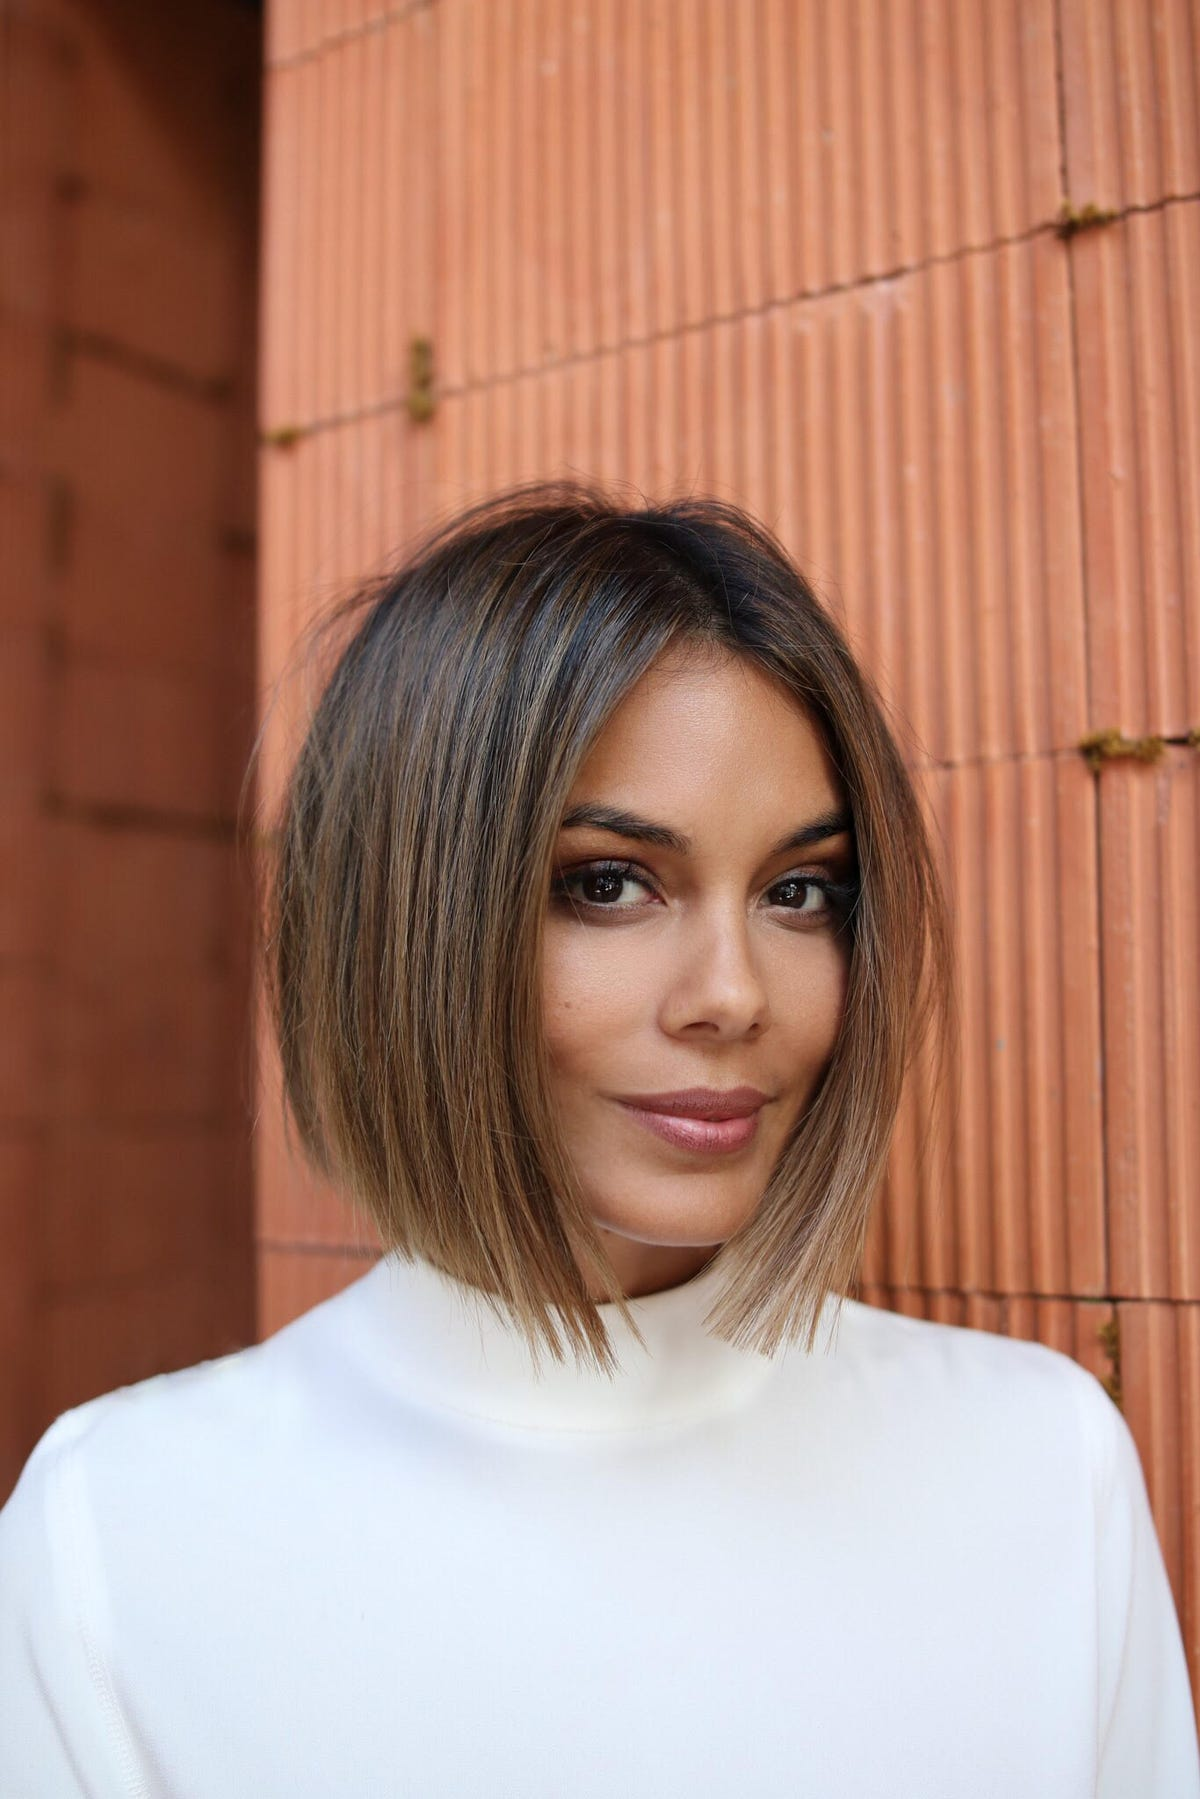 trendy spring haircut ideas to inspire fresh 2019 look